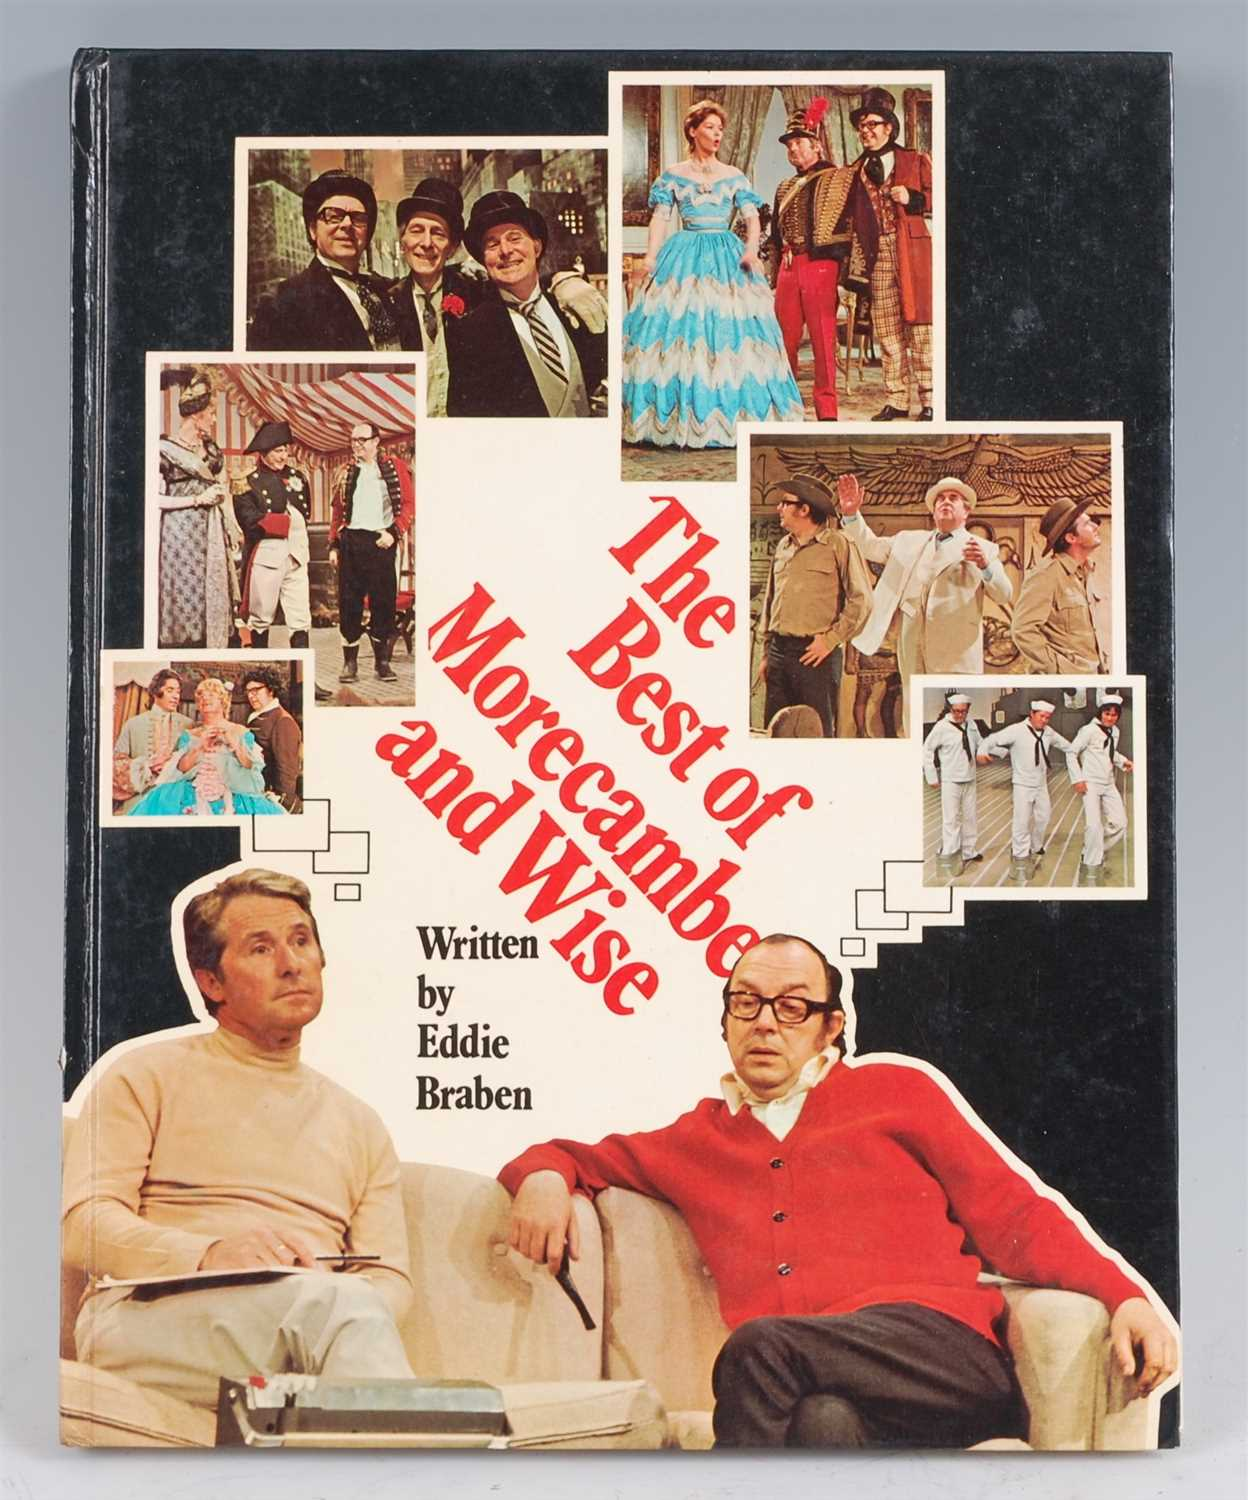 Lot 621-Eddie Braben, The Best of Morecambe and Wise